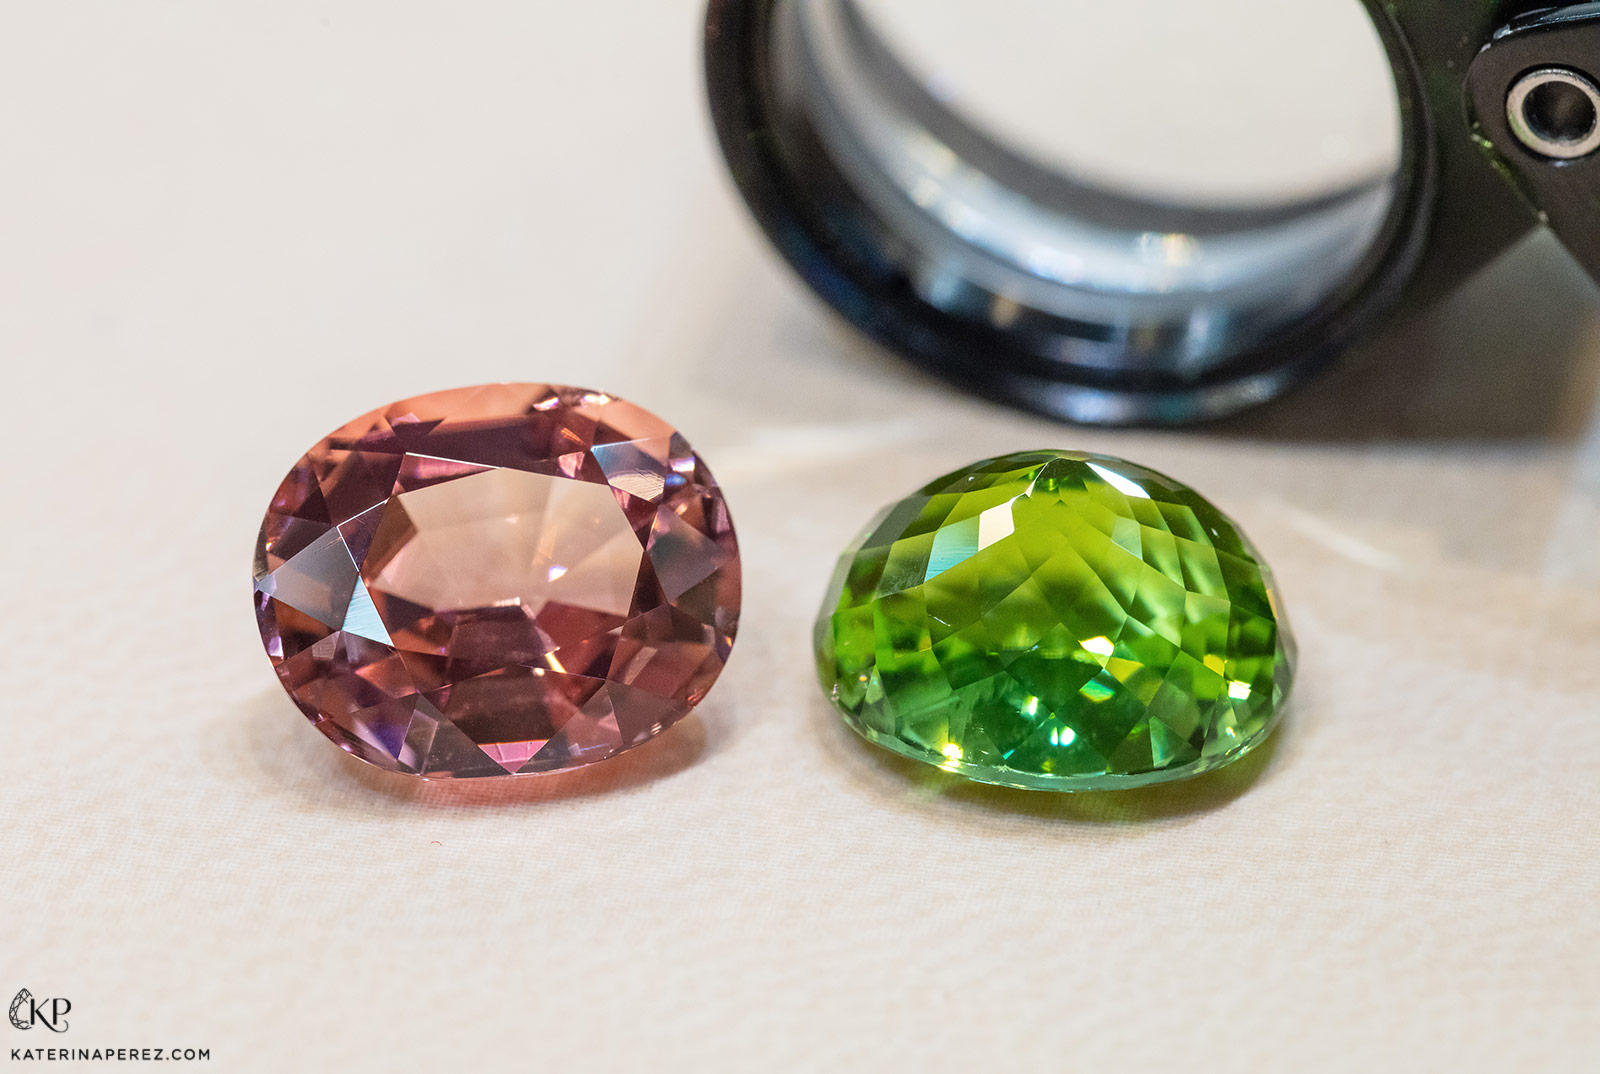 Nomad's Gems tourmalines acquired for re-cutting. Both of them illustrate imperfections of cuts as the facets are not perfectly symmetrical